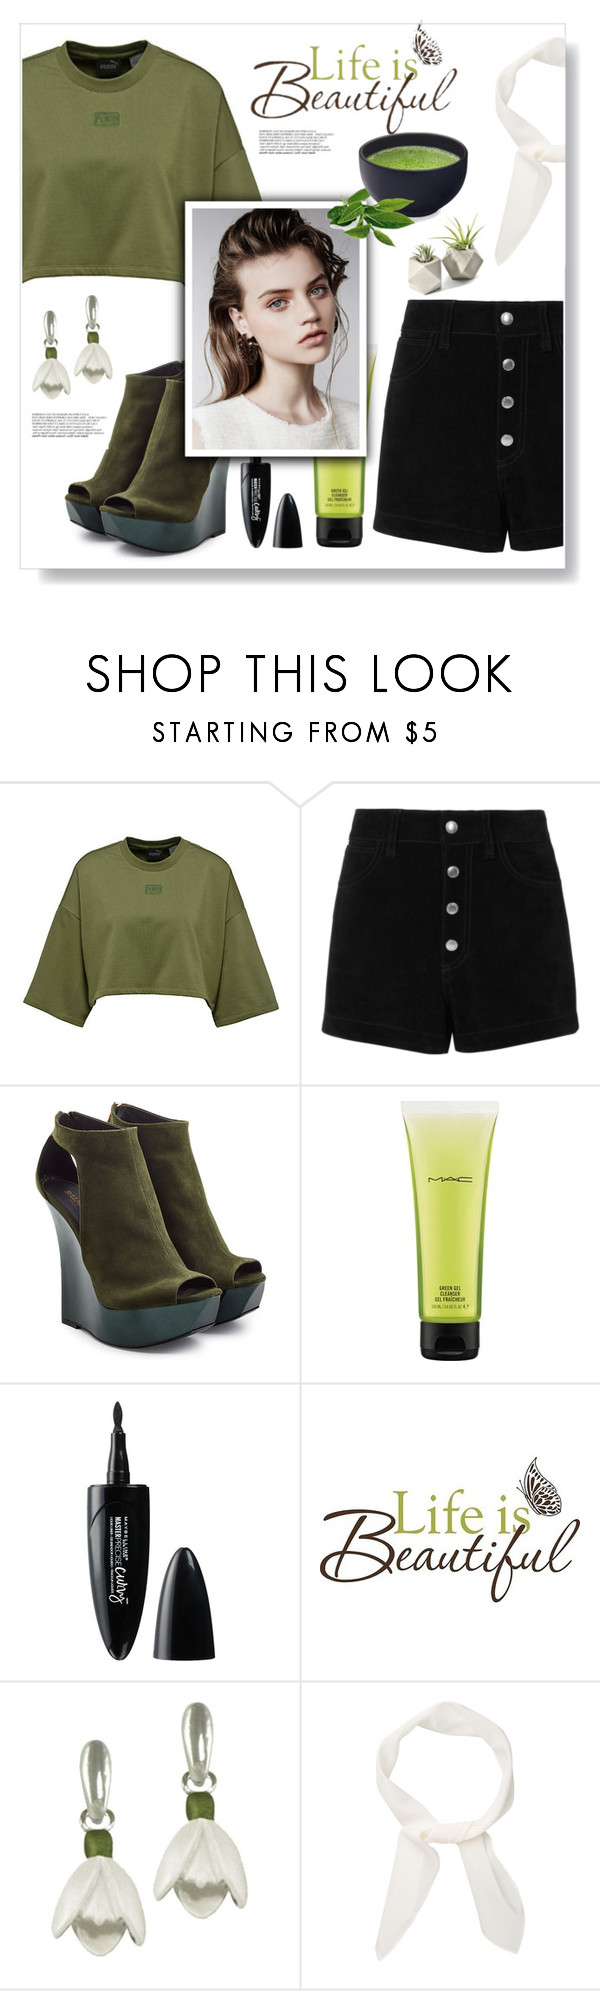 """""""pure night"""" by omniaasaad ❤ liked on Polyvore featuring rag & bone/JEAN, Balmain, MAC Cosmetics, Maybelline, Brewster Home Fashions and Chloé"""